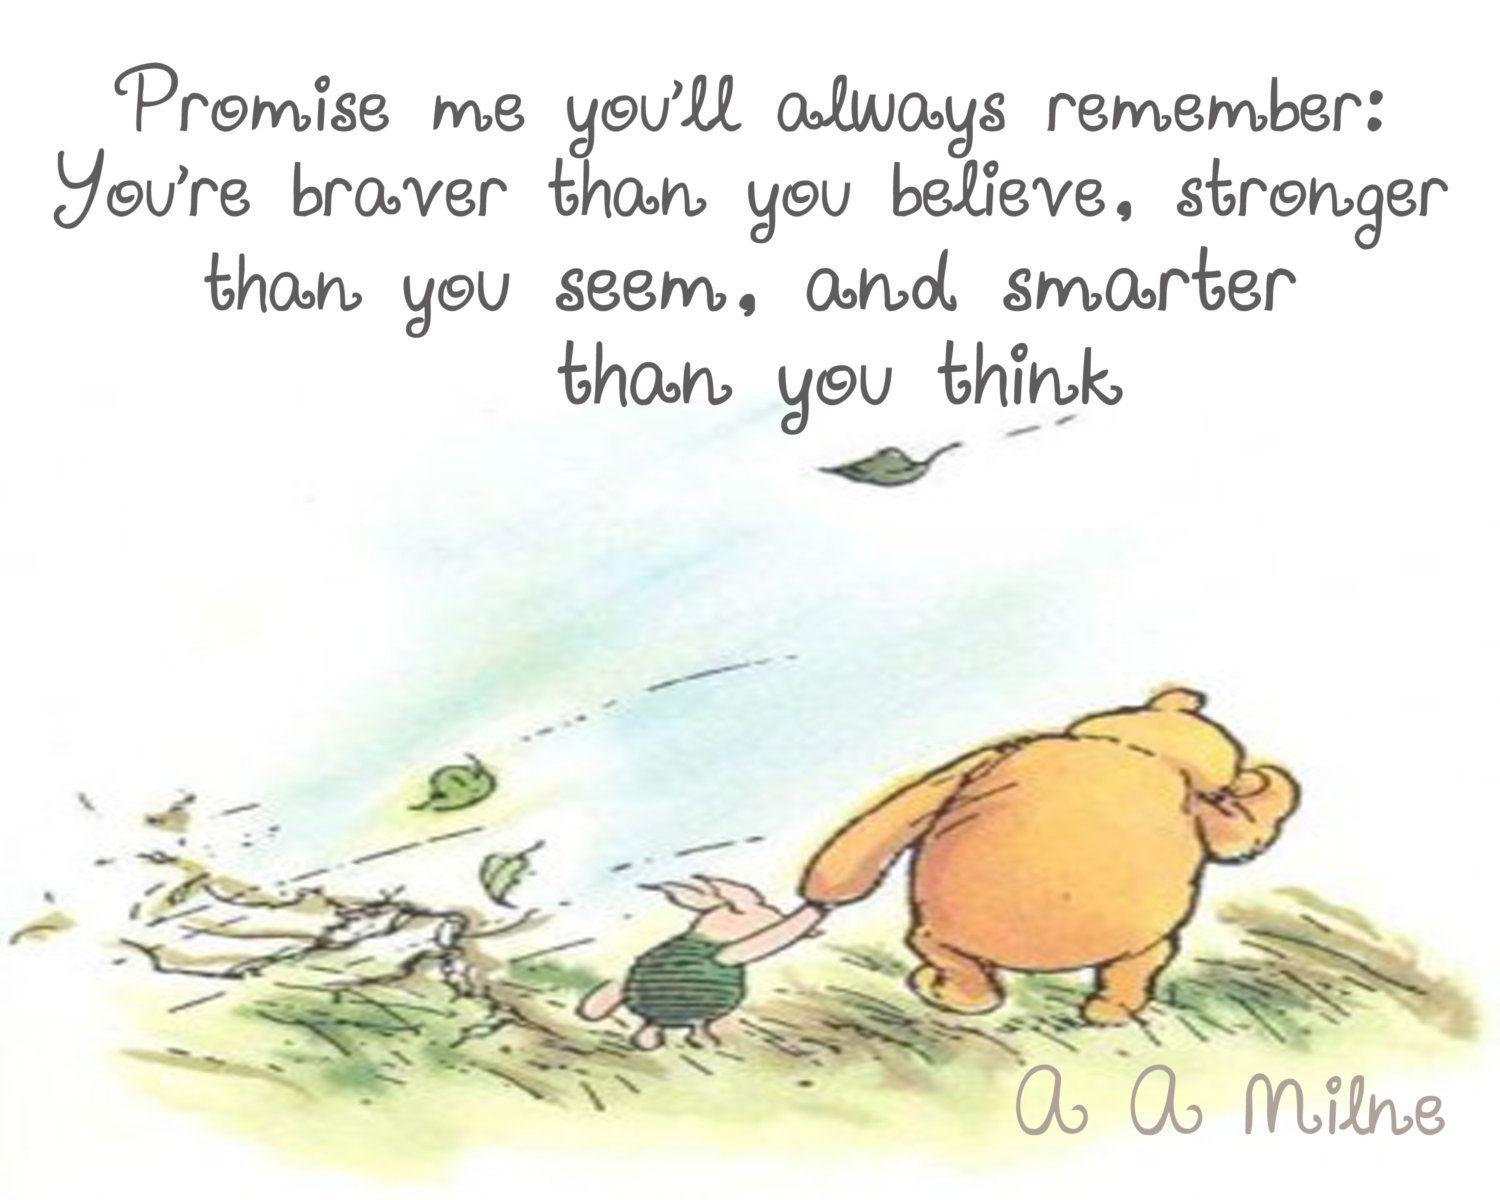 Winnie The Pooh Quotes Wallpapers - Wallpaper Cave